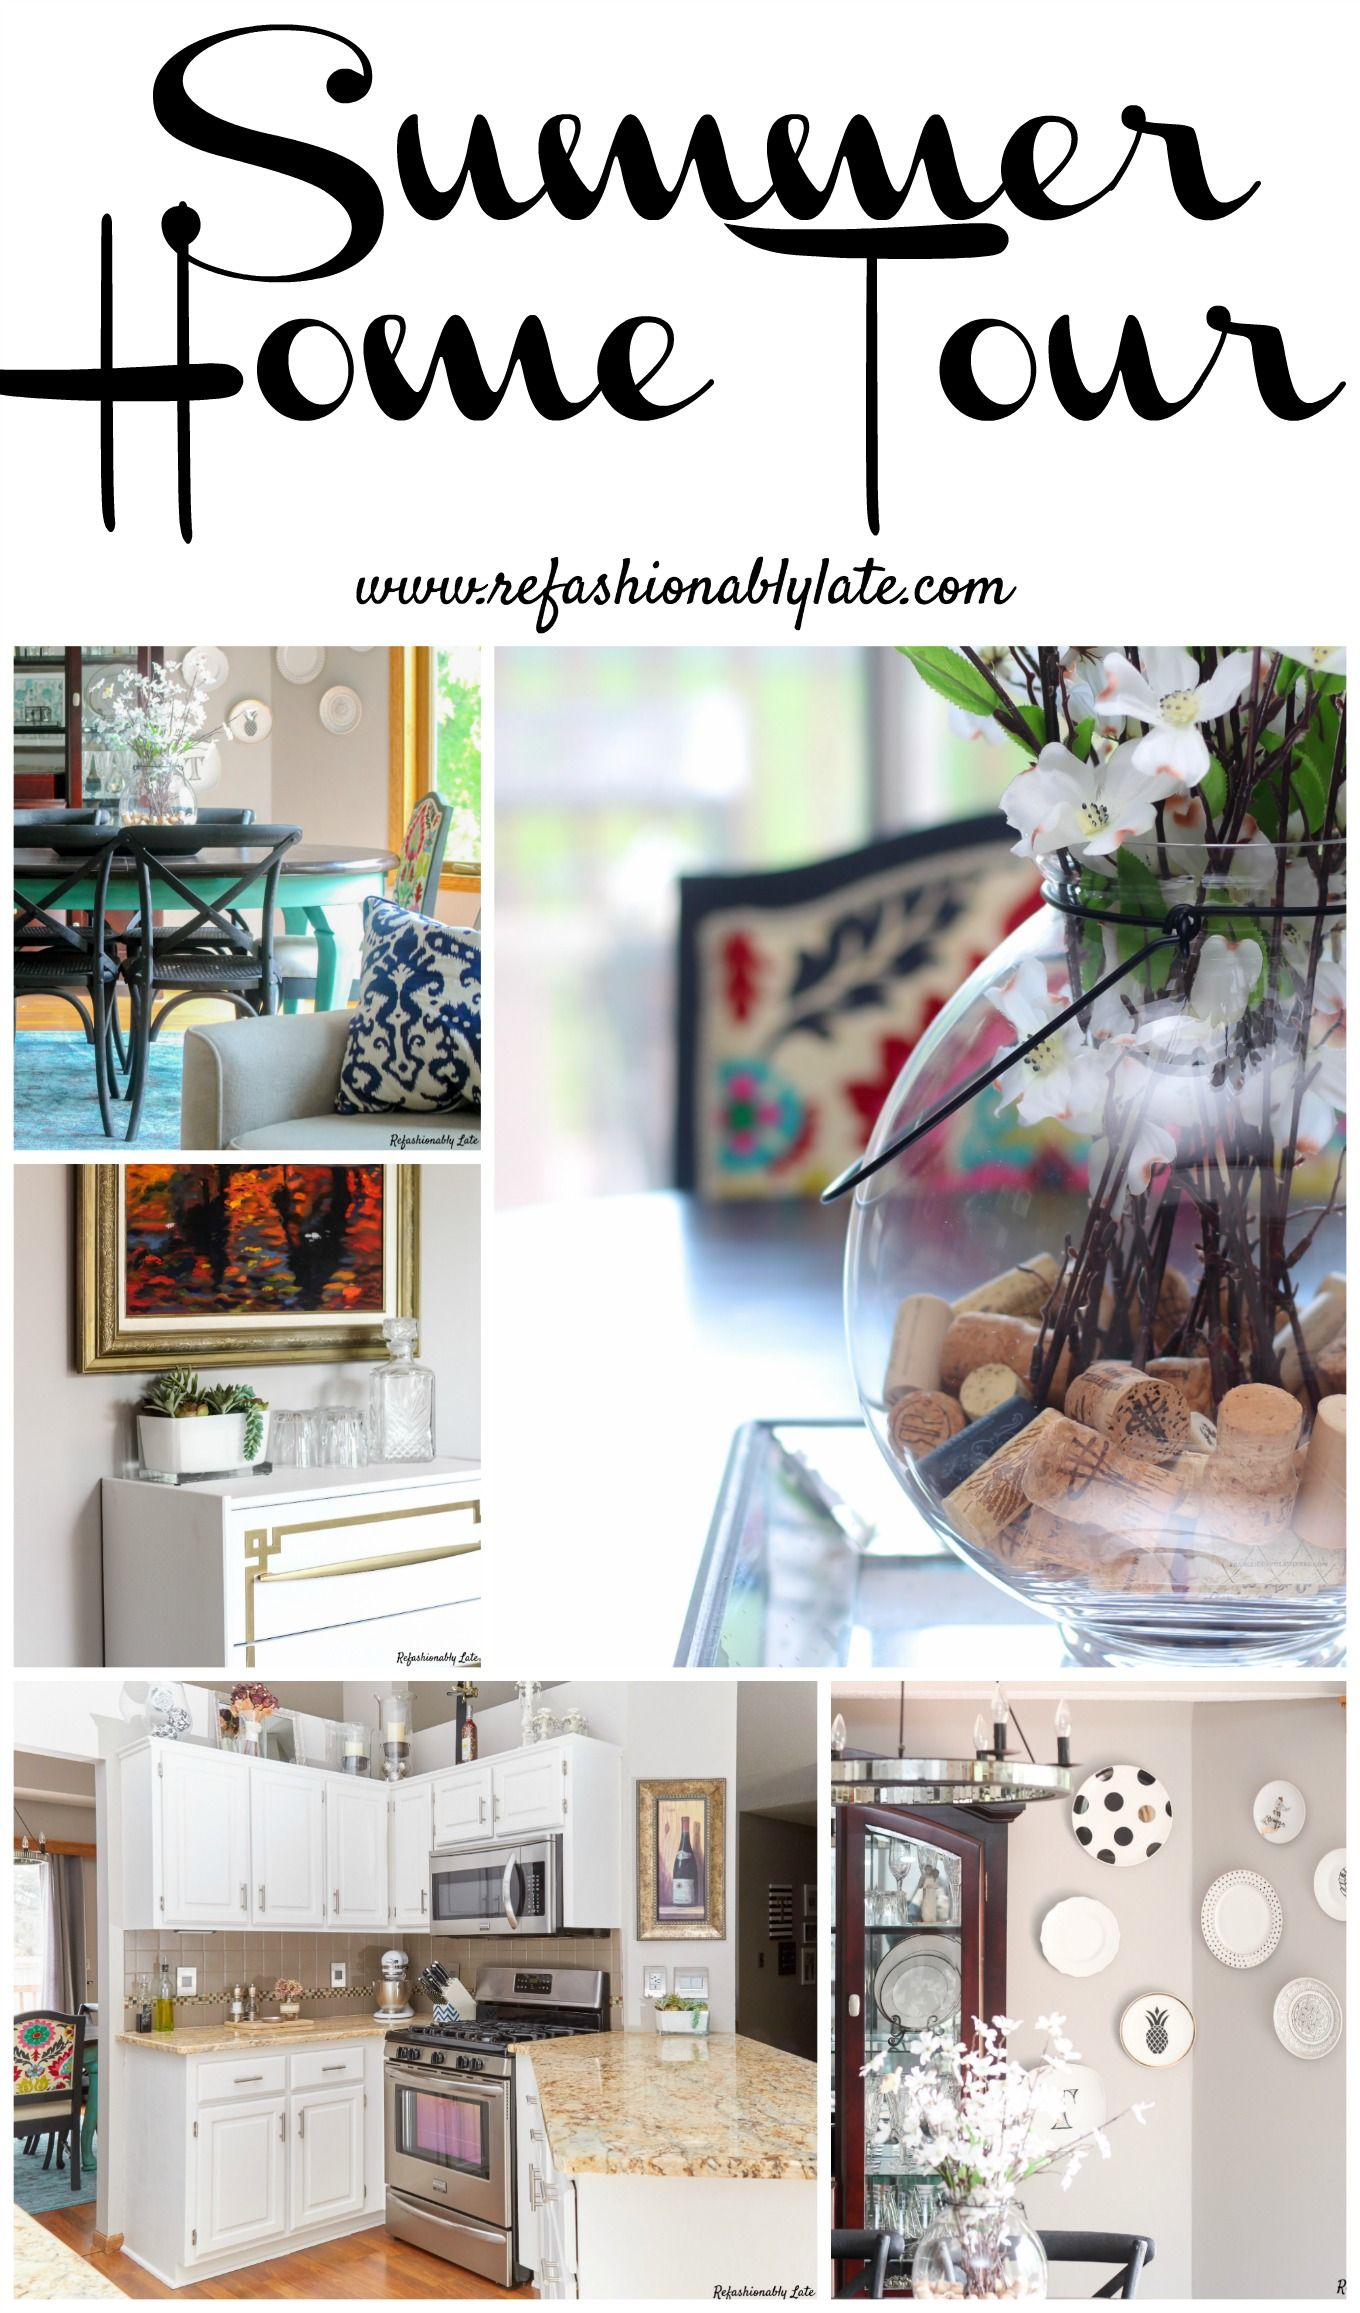 Welcome to my home, please come in and join me for a tour!   www.refashionablylate.com